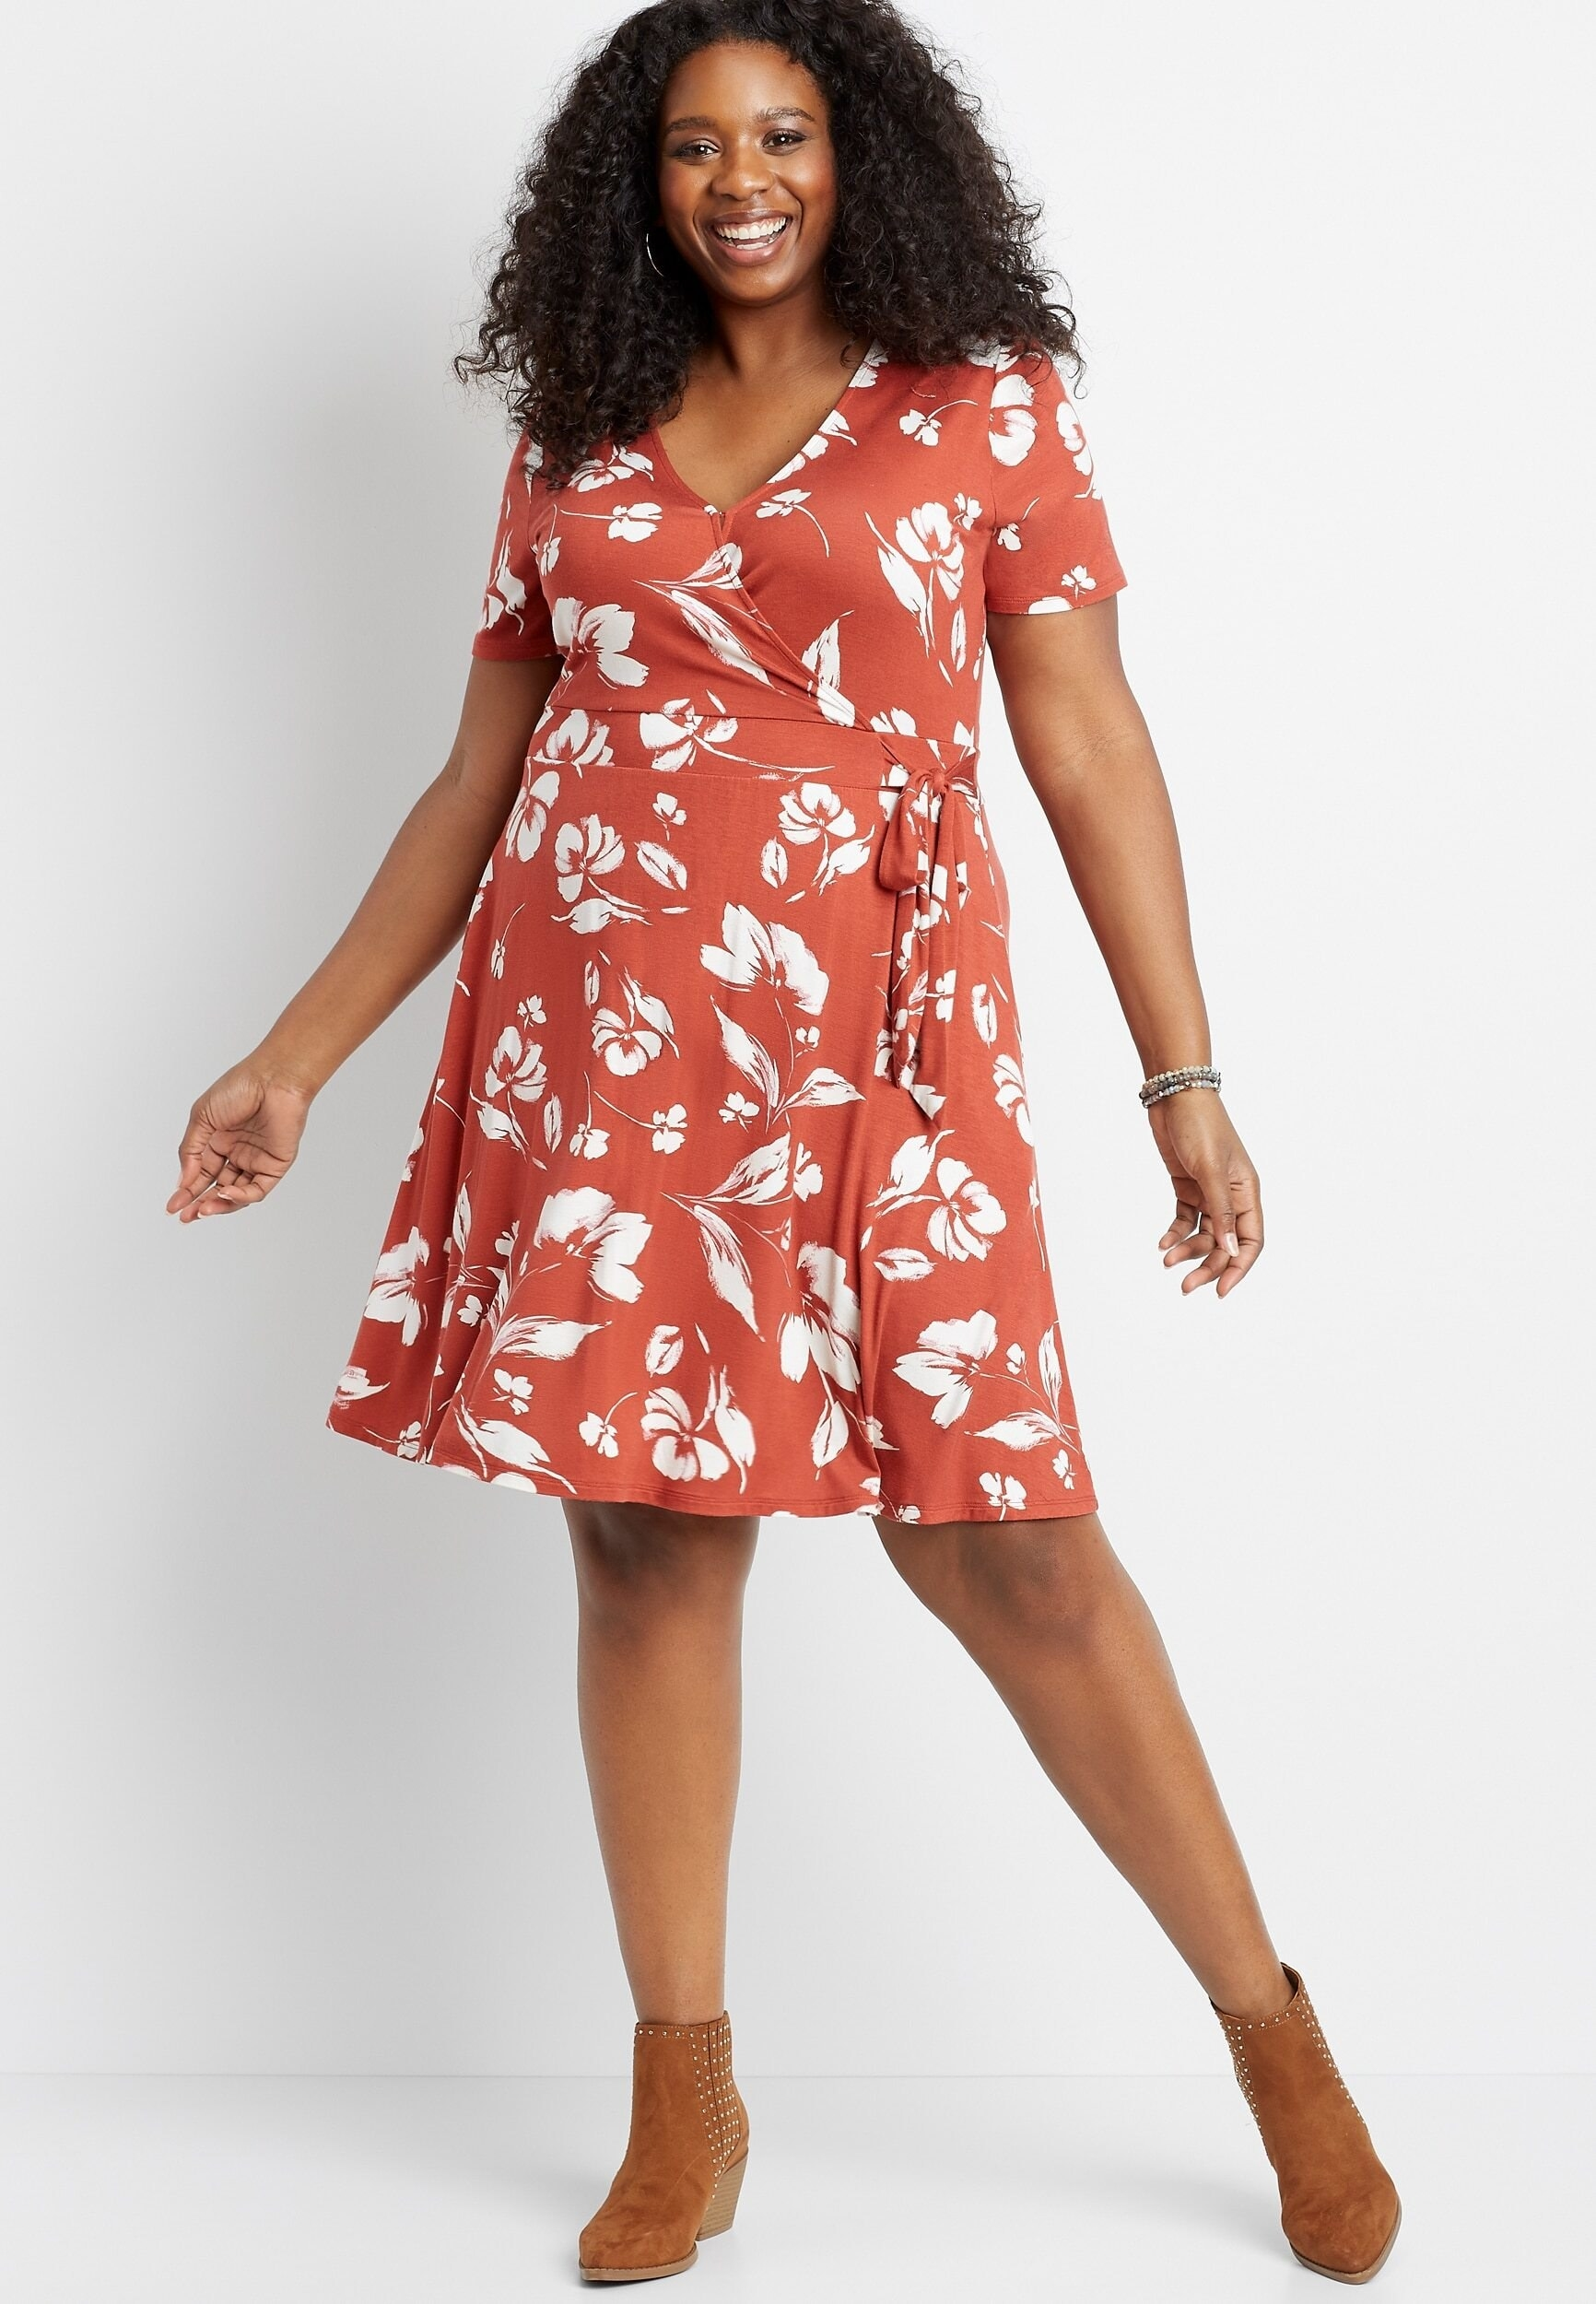 Cap sleeve mini dress with floral pattern on plus size model